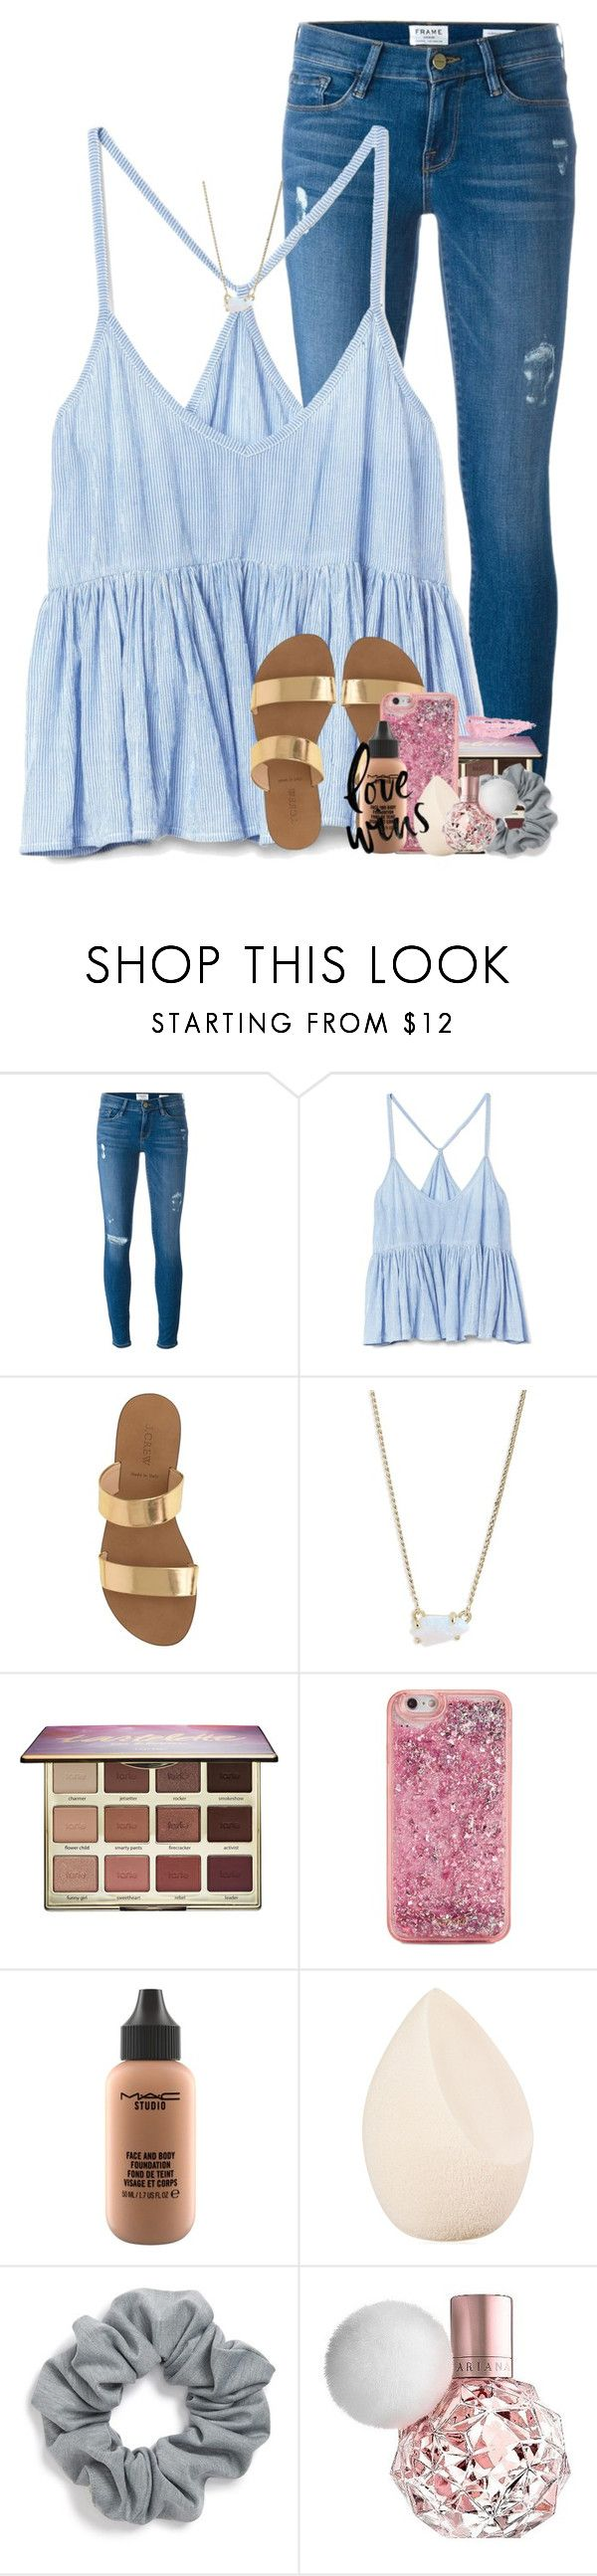 """in desperate need of a hug rn"" by betterbeliebitsemcaniff ❤ liked on Polyvore featuring Frame, Gap, J.Crew, Kendra Scott, tarte, ban.do, MAC Cosmetics, Christian Dior, Natasha and By Terry"